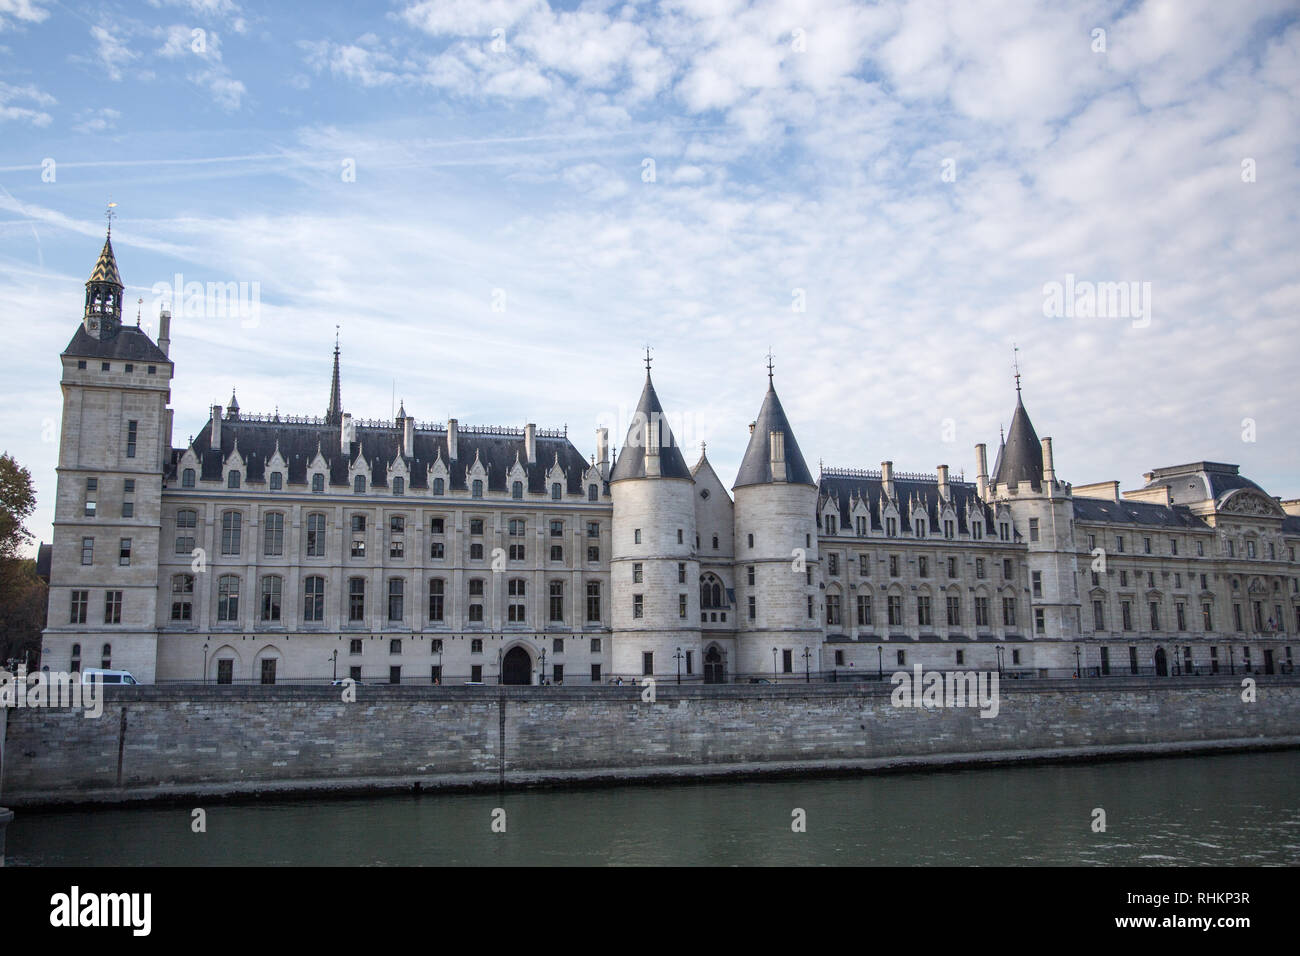 PARIS, FRANCE - OCTOBER 16, 2018: Paris Castle Conciergerie - former royal palace and prison. Conciergerie located on west of Cite Island and today -  Stock Photo